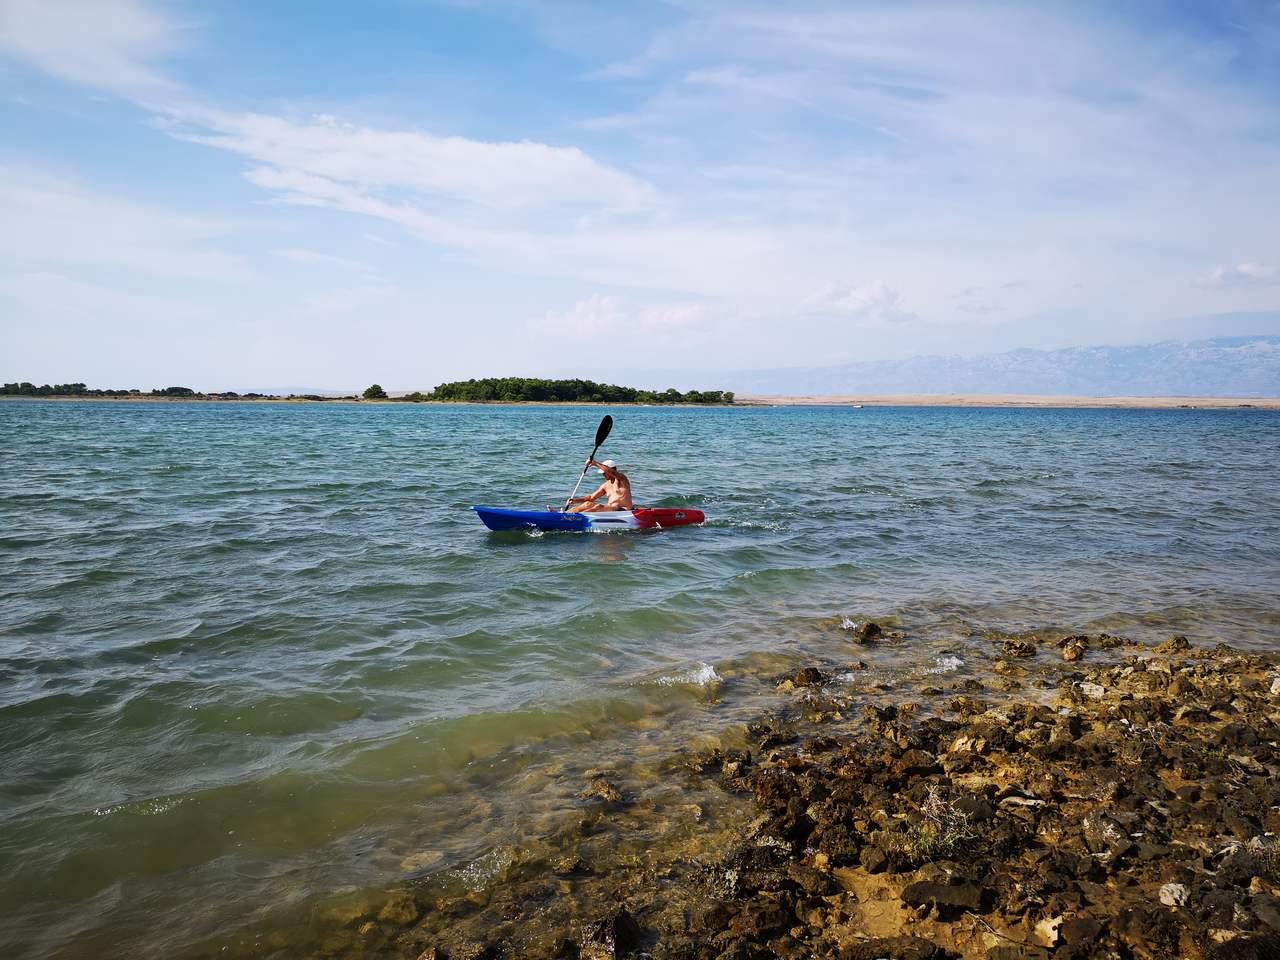 a man in a kayak on the sea